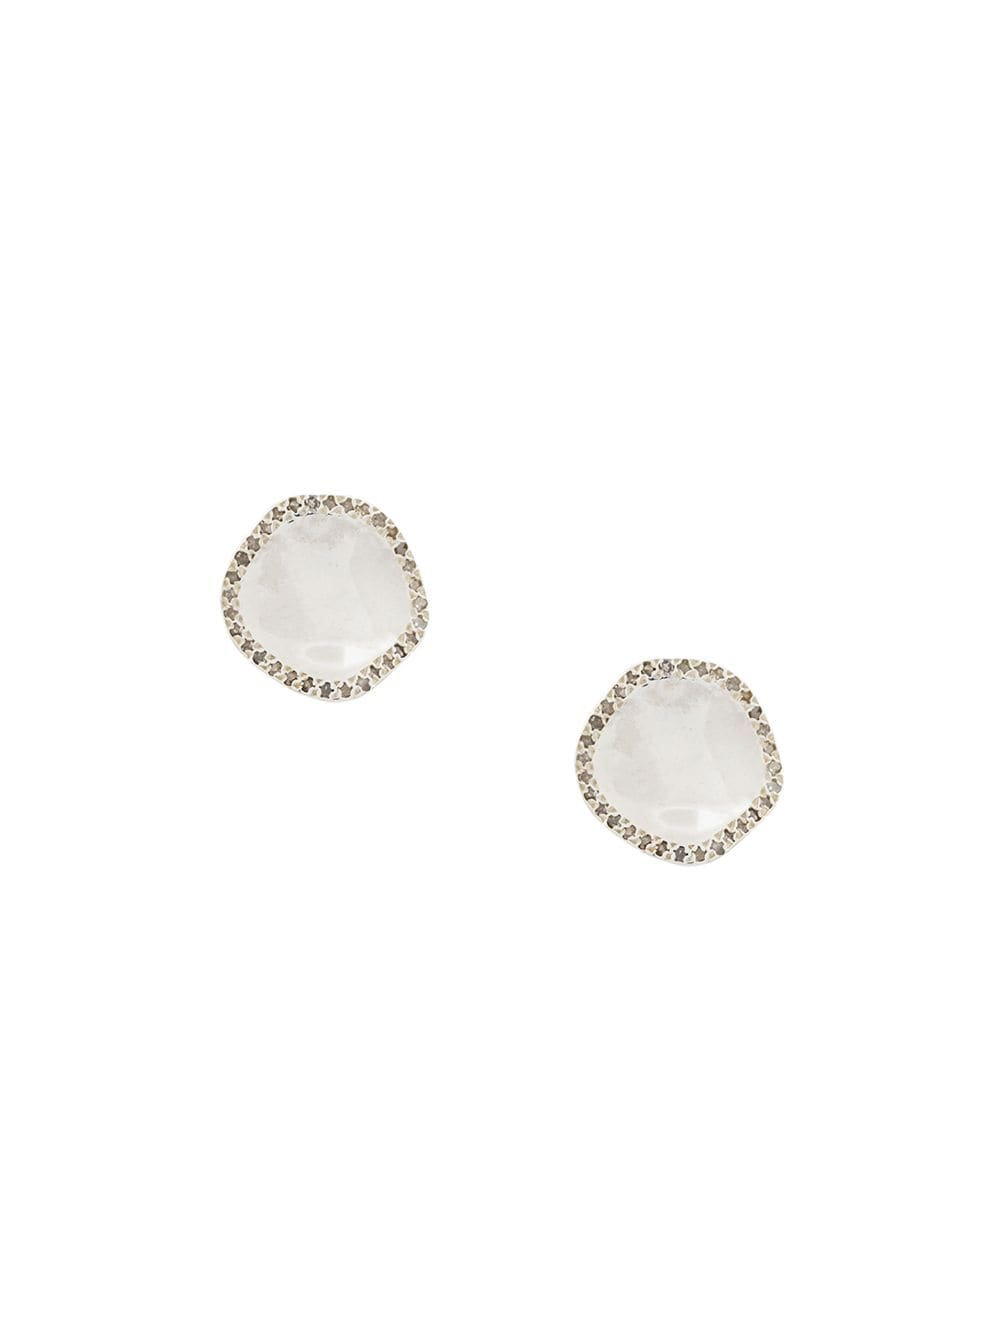 Rosa Maria Embellished Stud Earrings | Farfetch.com